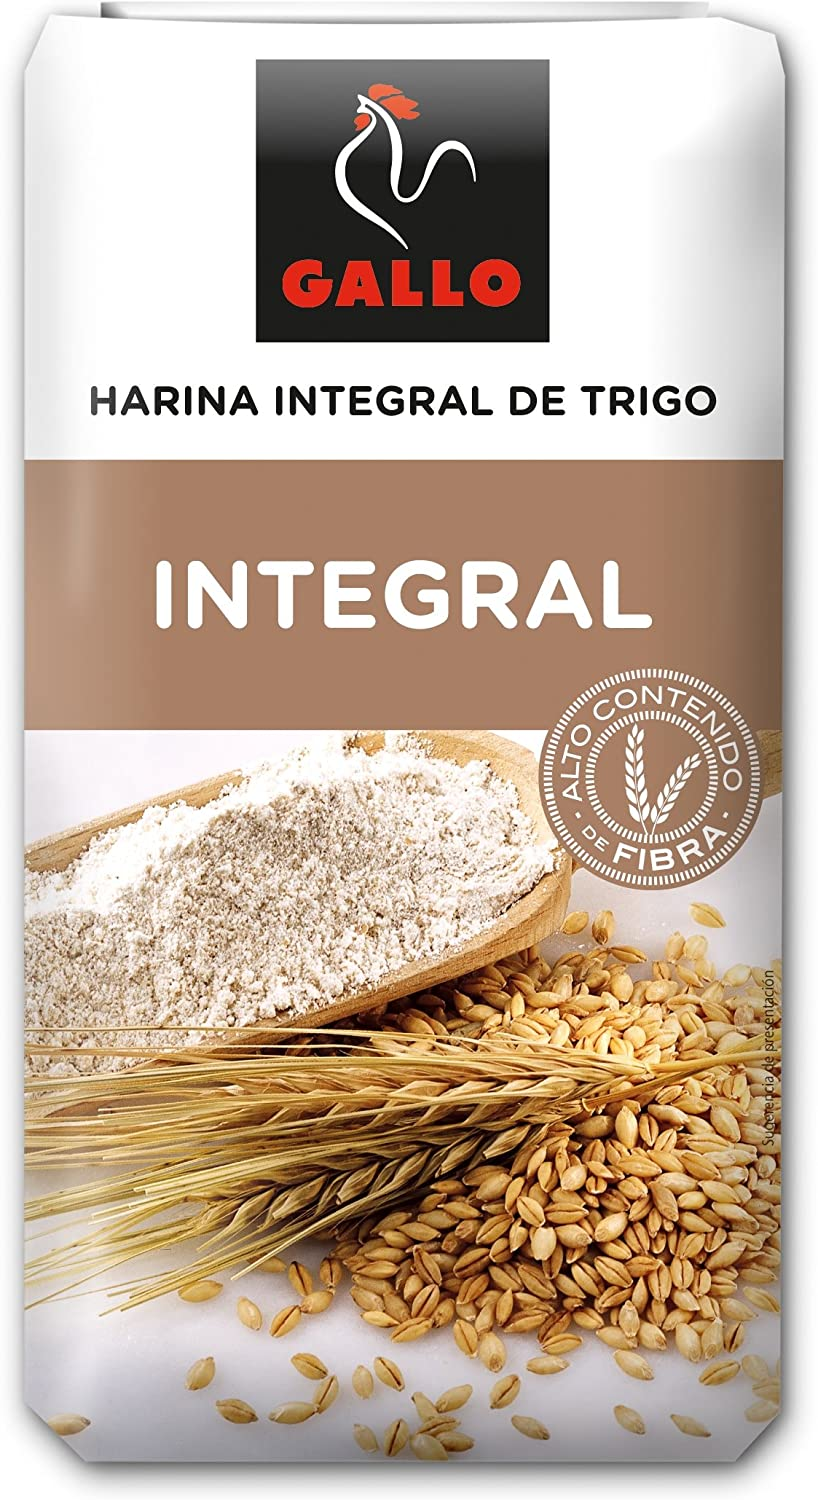 Gallo - Harina integral de trigo - 1kg: Amazon.es: Alimentación y ...